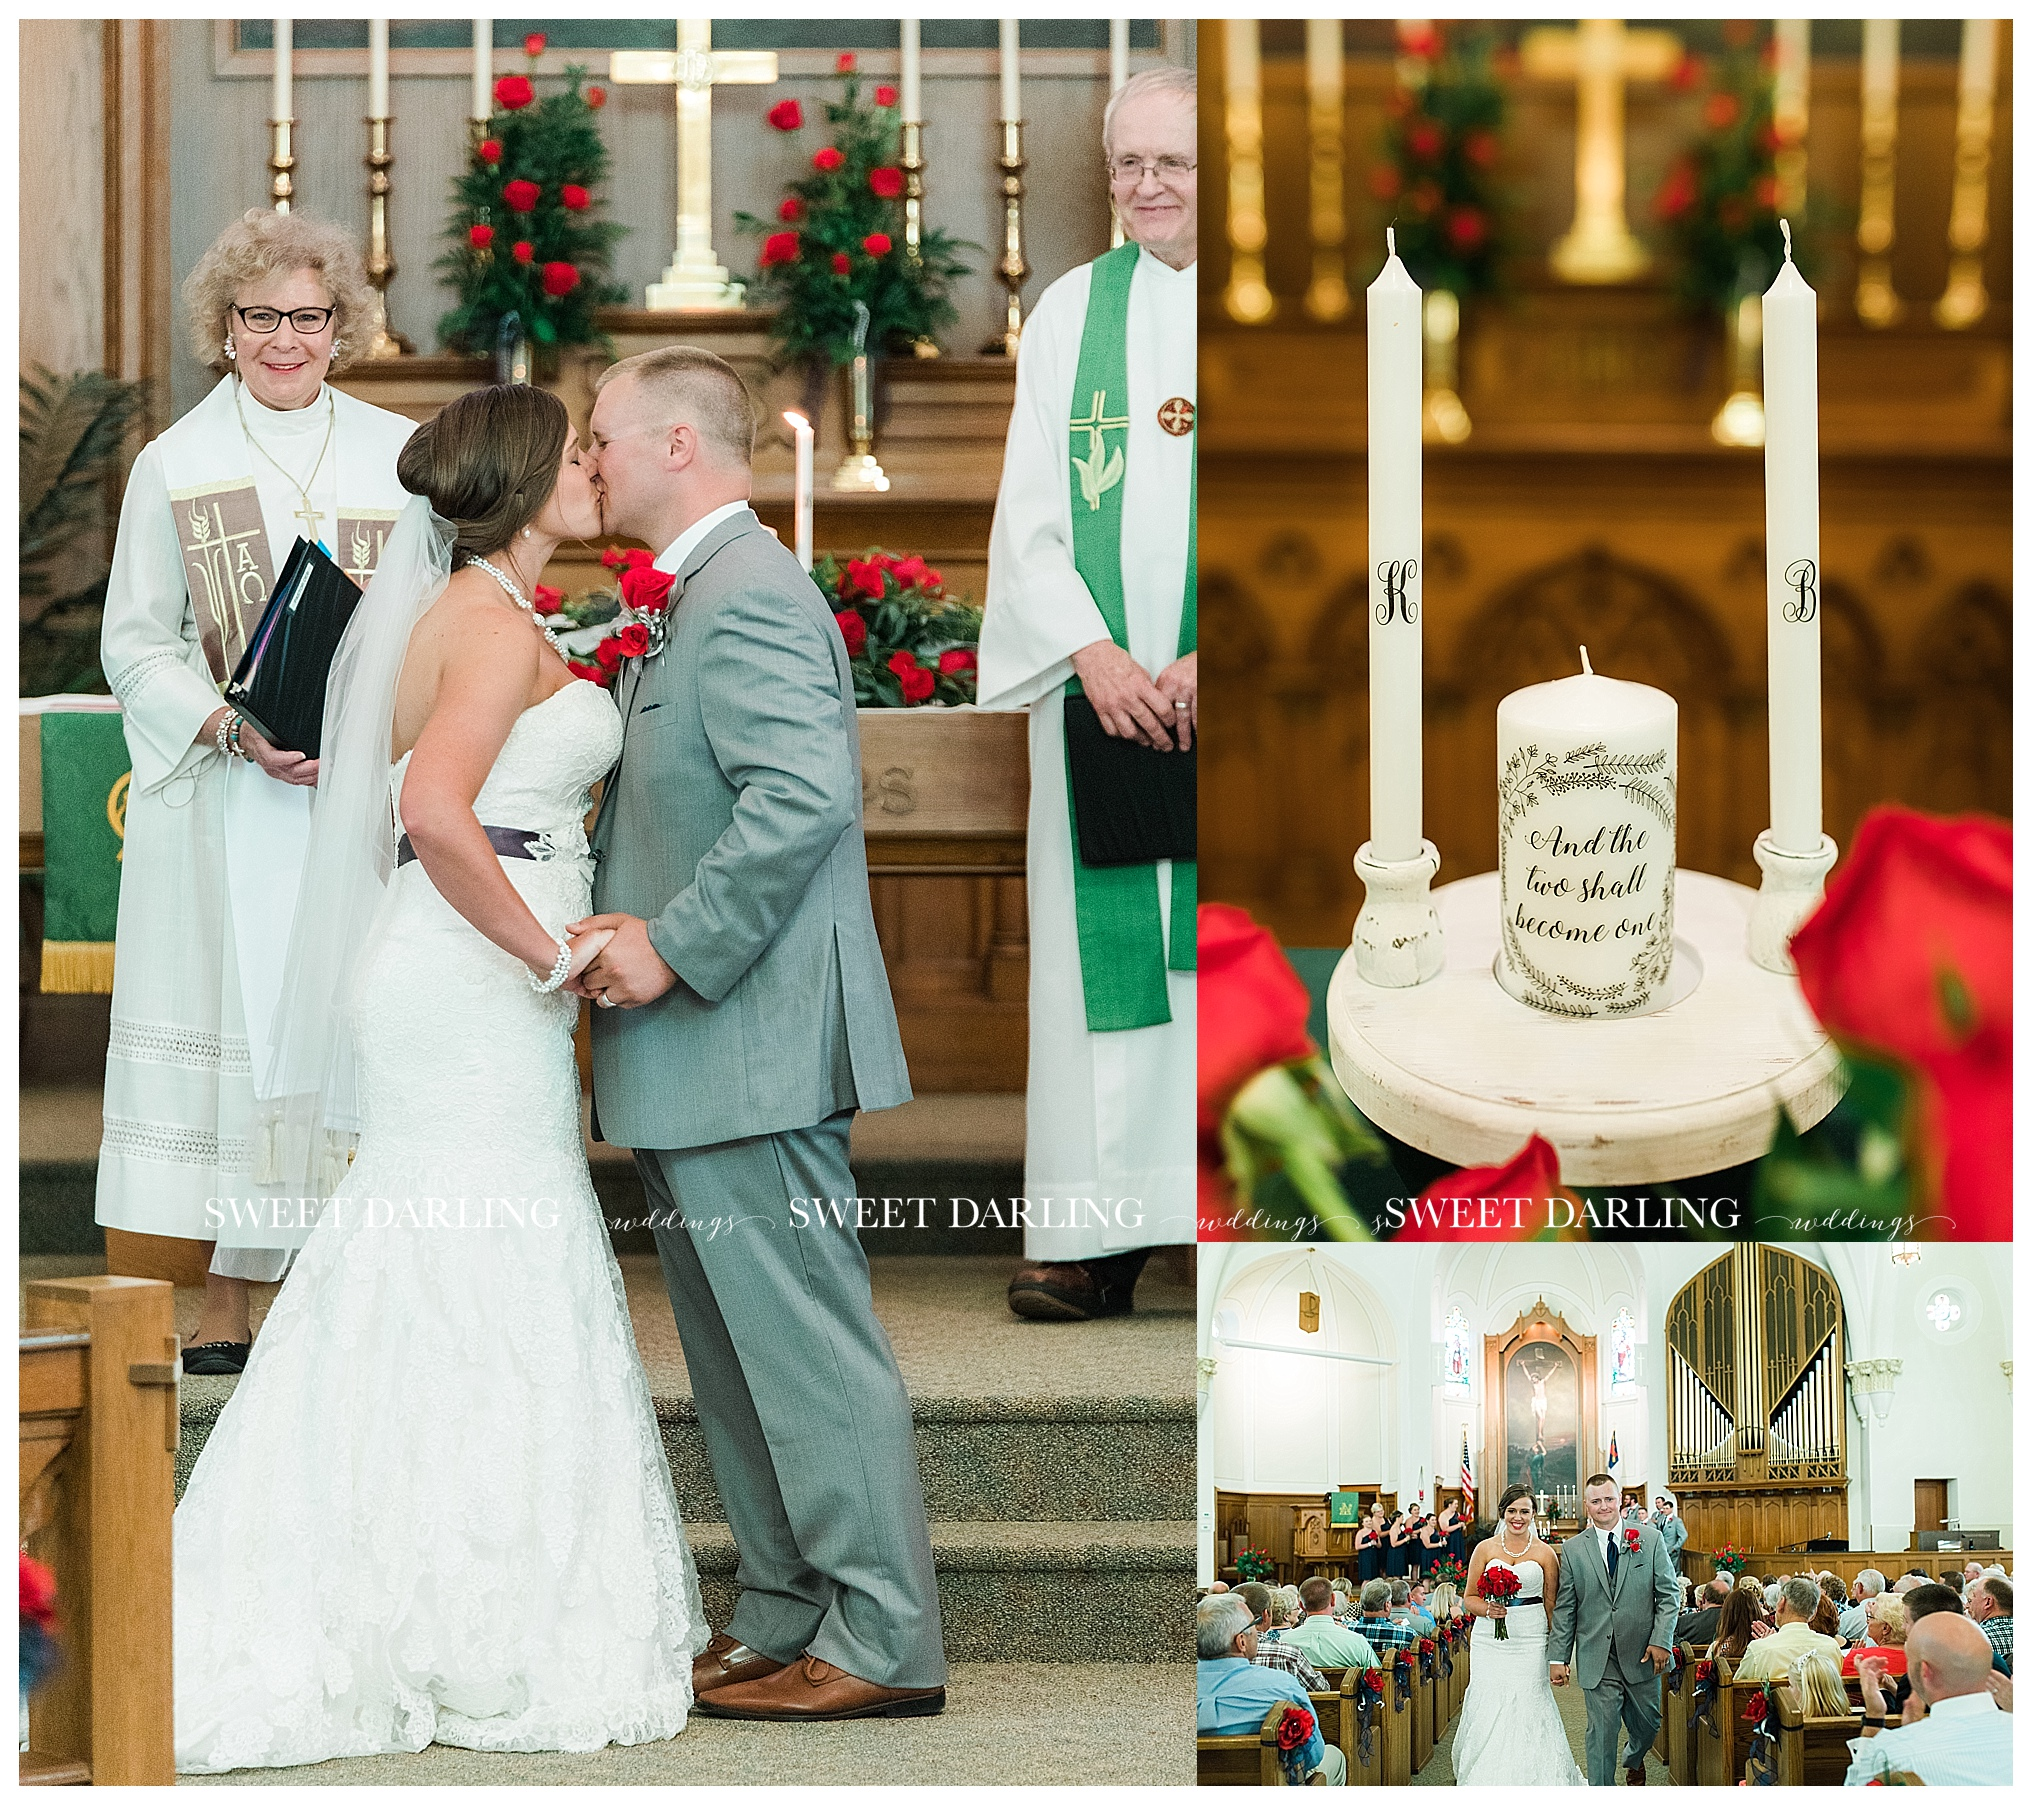 champaign-county-royal-paxton-illinois-sweet-darling-weddings-photography-red-navy-roses_1371.jpg